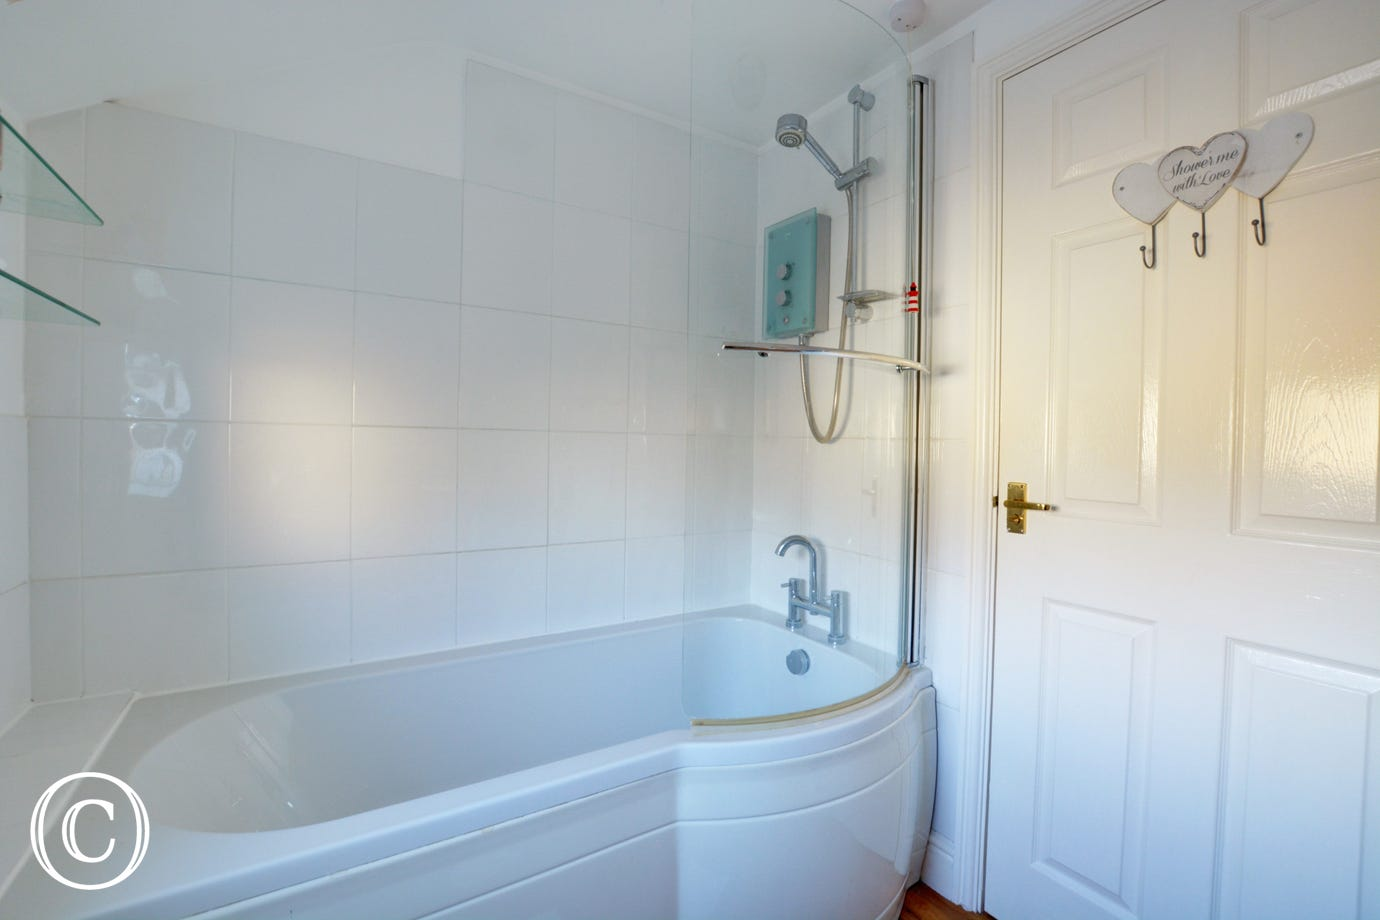 Bathroom with over the shower bath, washbasin and wc